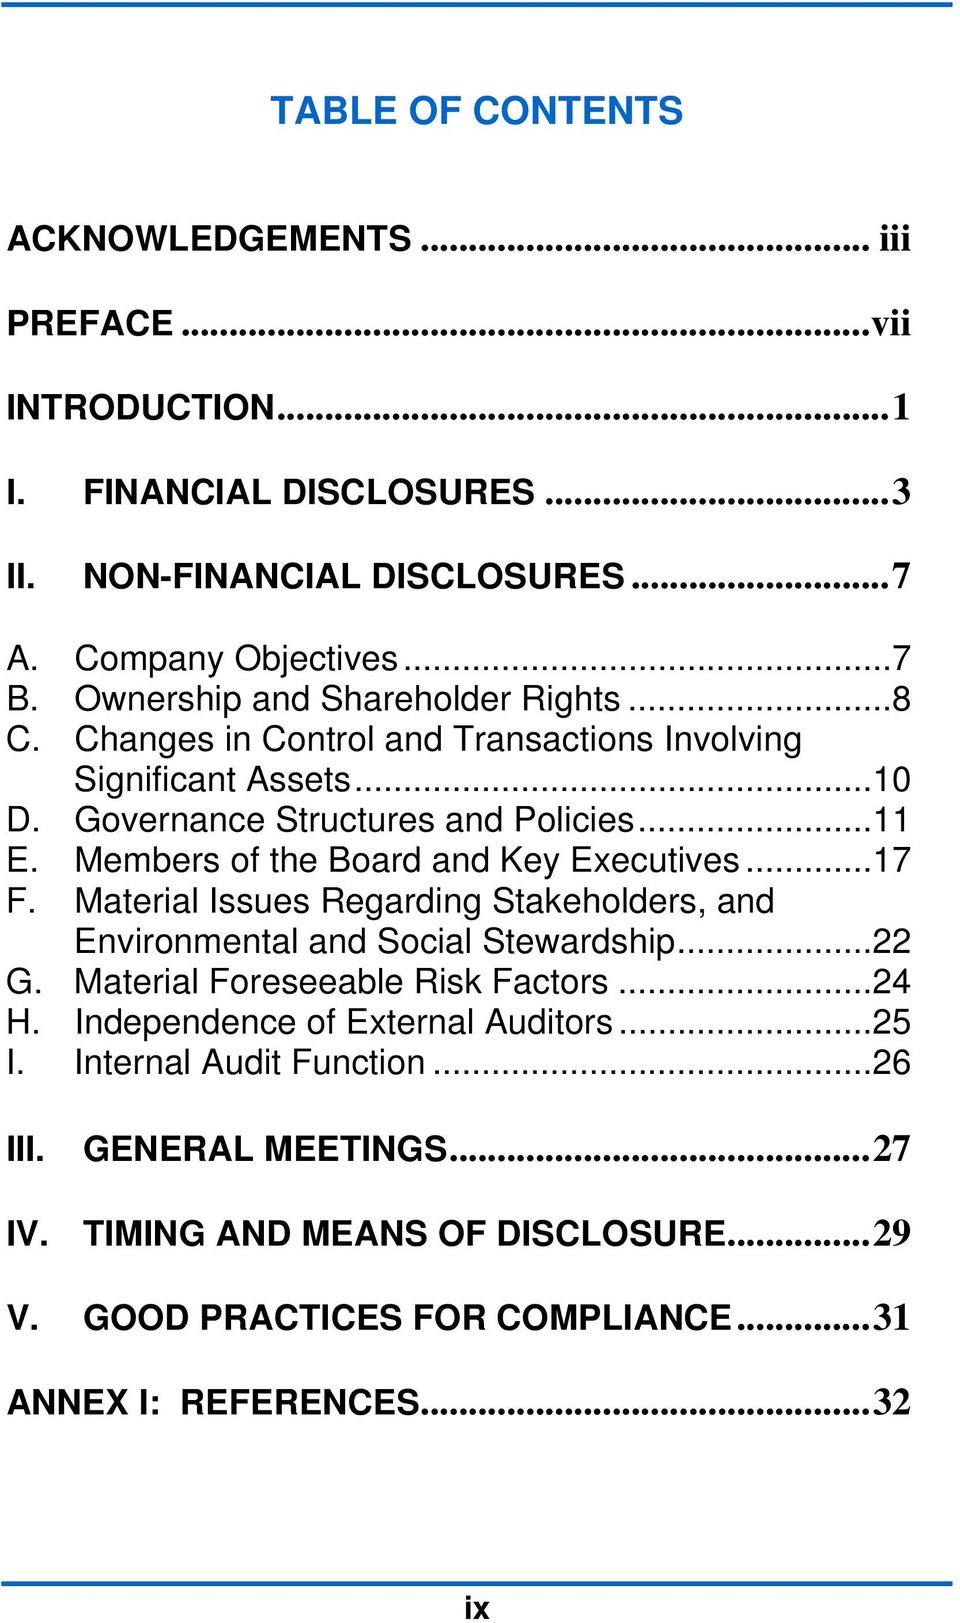 Members of the Board and Key Executives...17 F. Material Issues Regarding Stakeholders, and Environmental and Social Stewardship...22 G. Material Foreseeable Risk Factors...24 H.